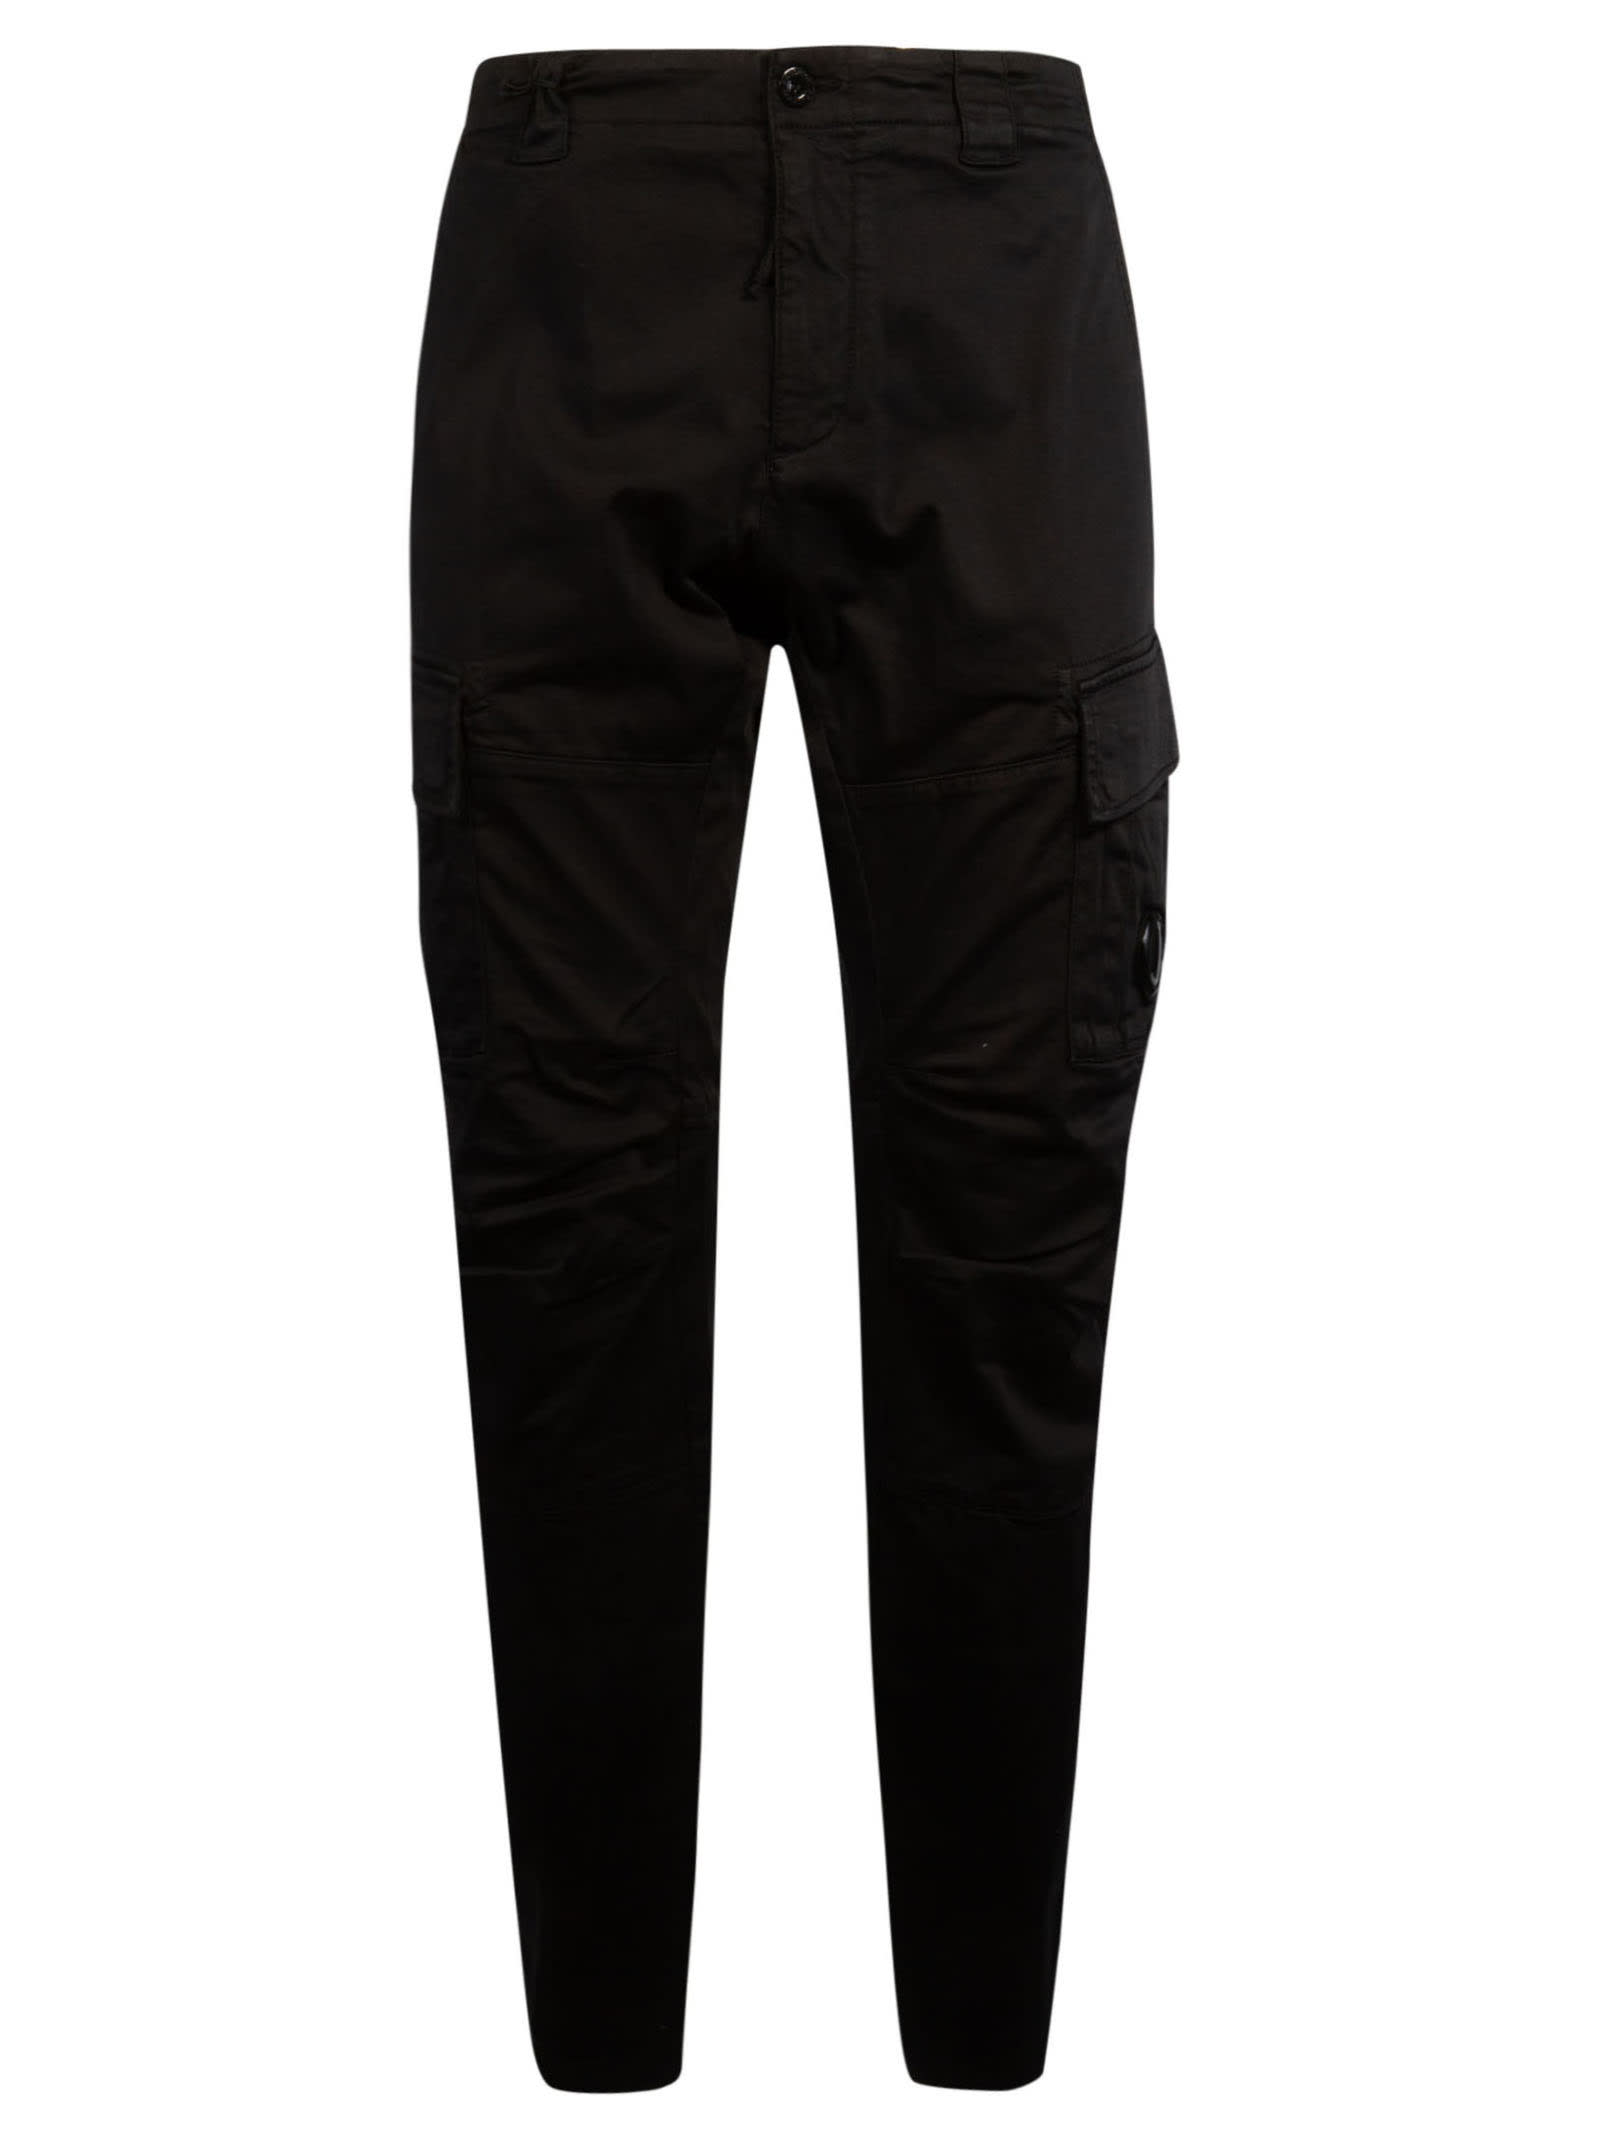 C.P. Company Side Cargo Pocket Trousers